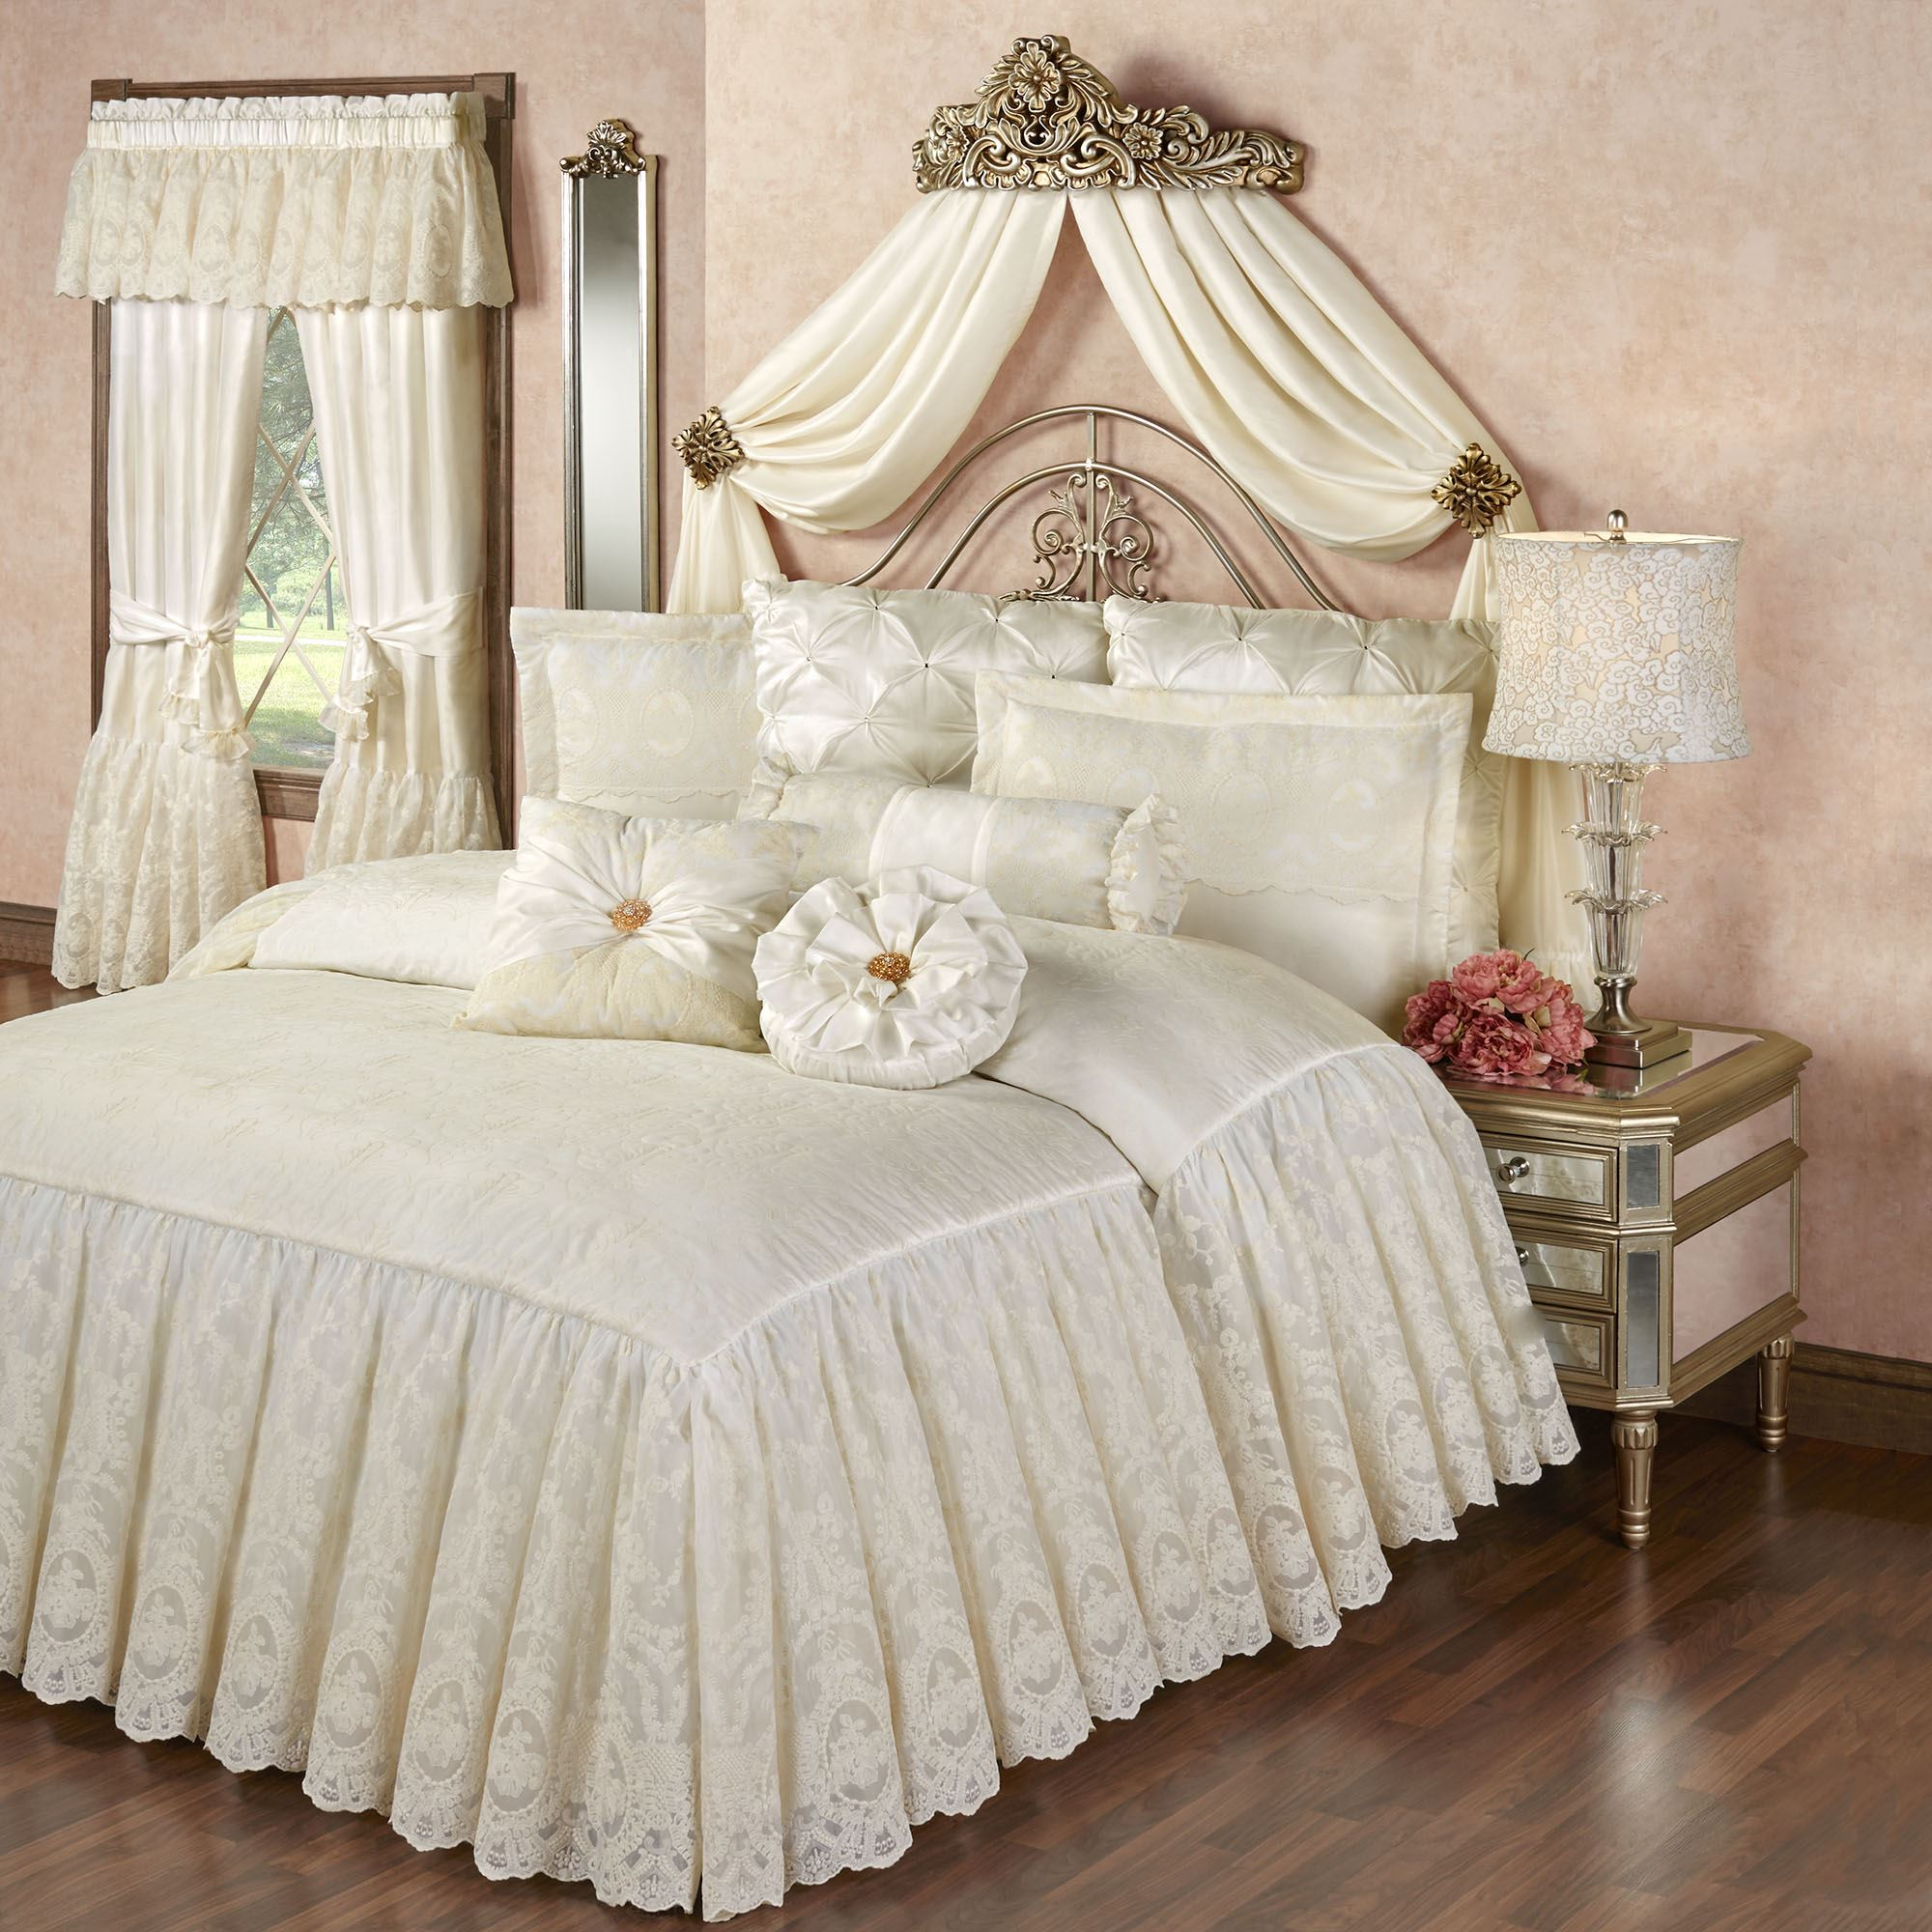 flooring stone set white soft cream shams area dark quilted top chic table patchwork wood grey cover tufted shabby bed drum lamp quilt vintage clean oak furniture bedding red floral bedroom and line shade accent fiber pattern lavender beding headboard rug